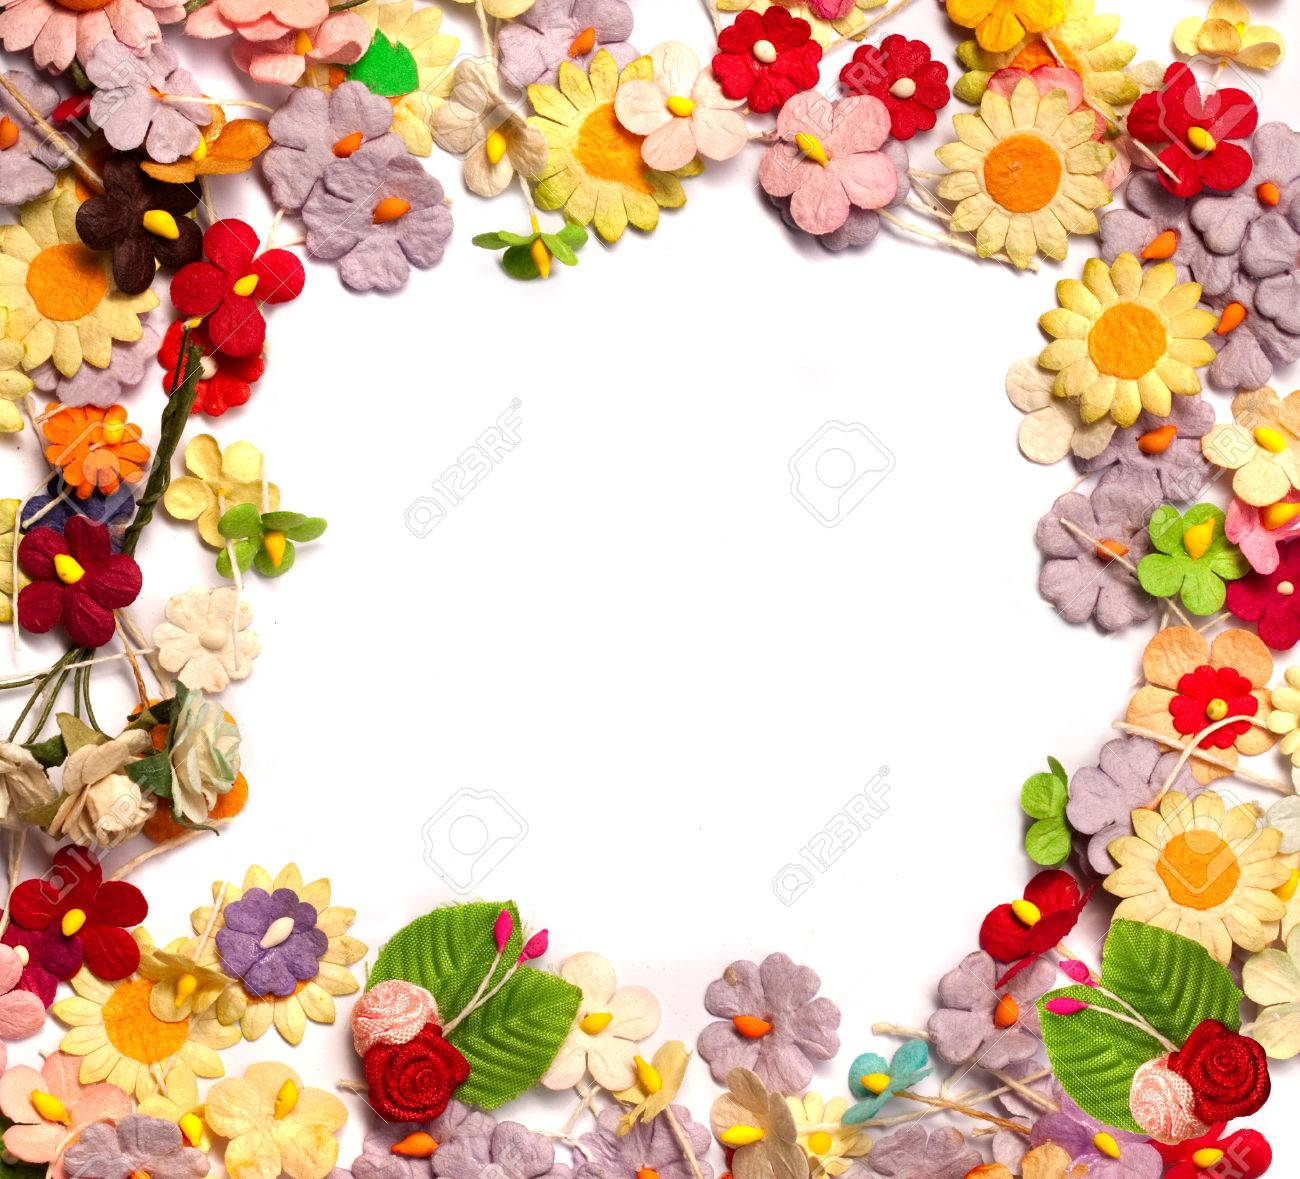 Extraordinary Handicraft Paper With Colorful Of Handicraft Paper Flower Frame Stock Photo, Picture And